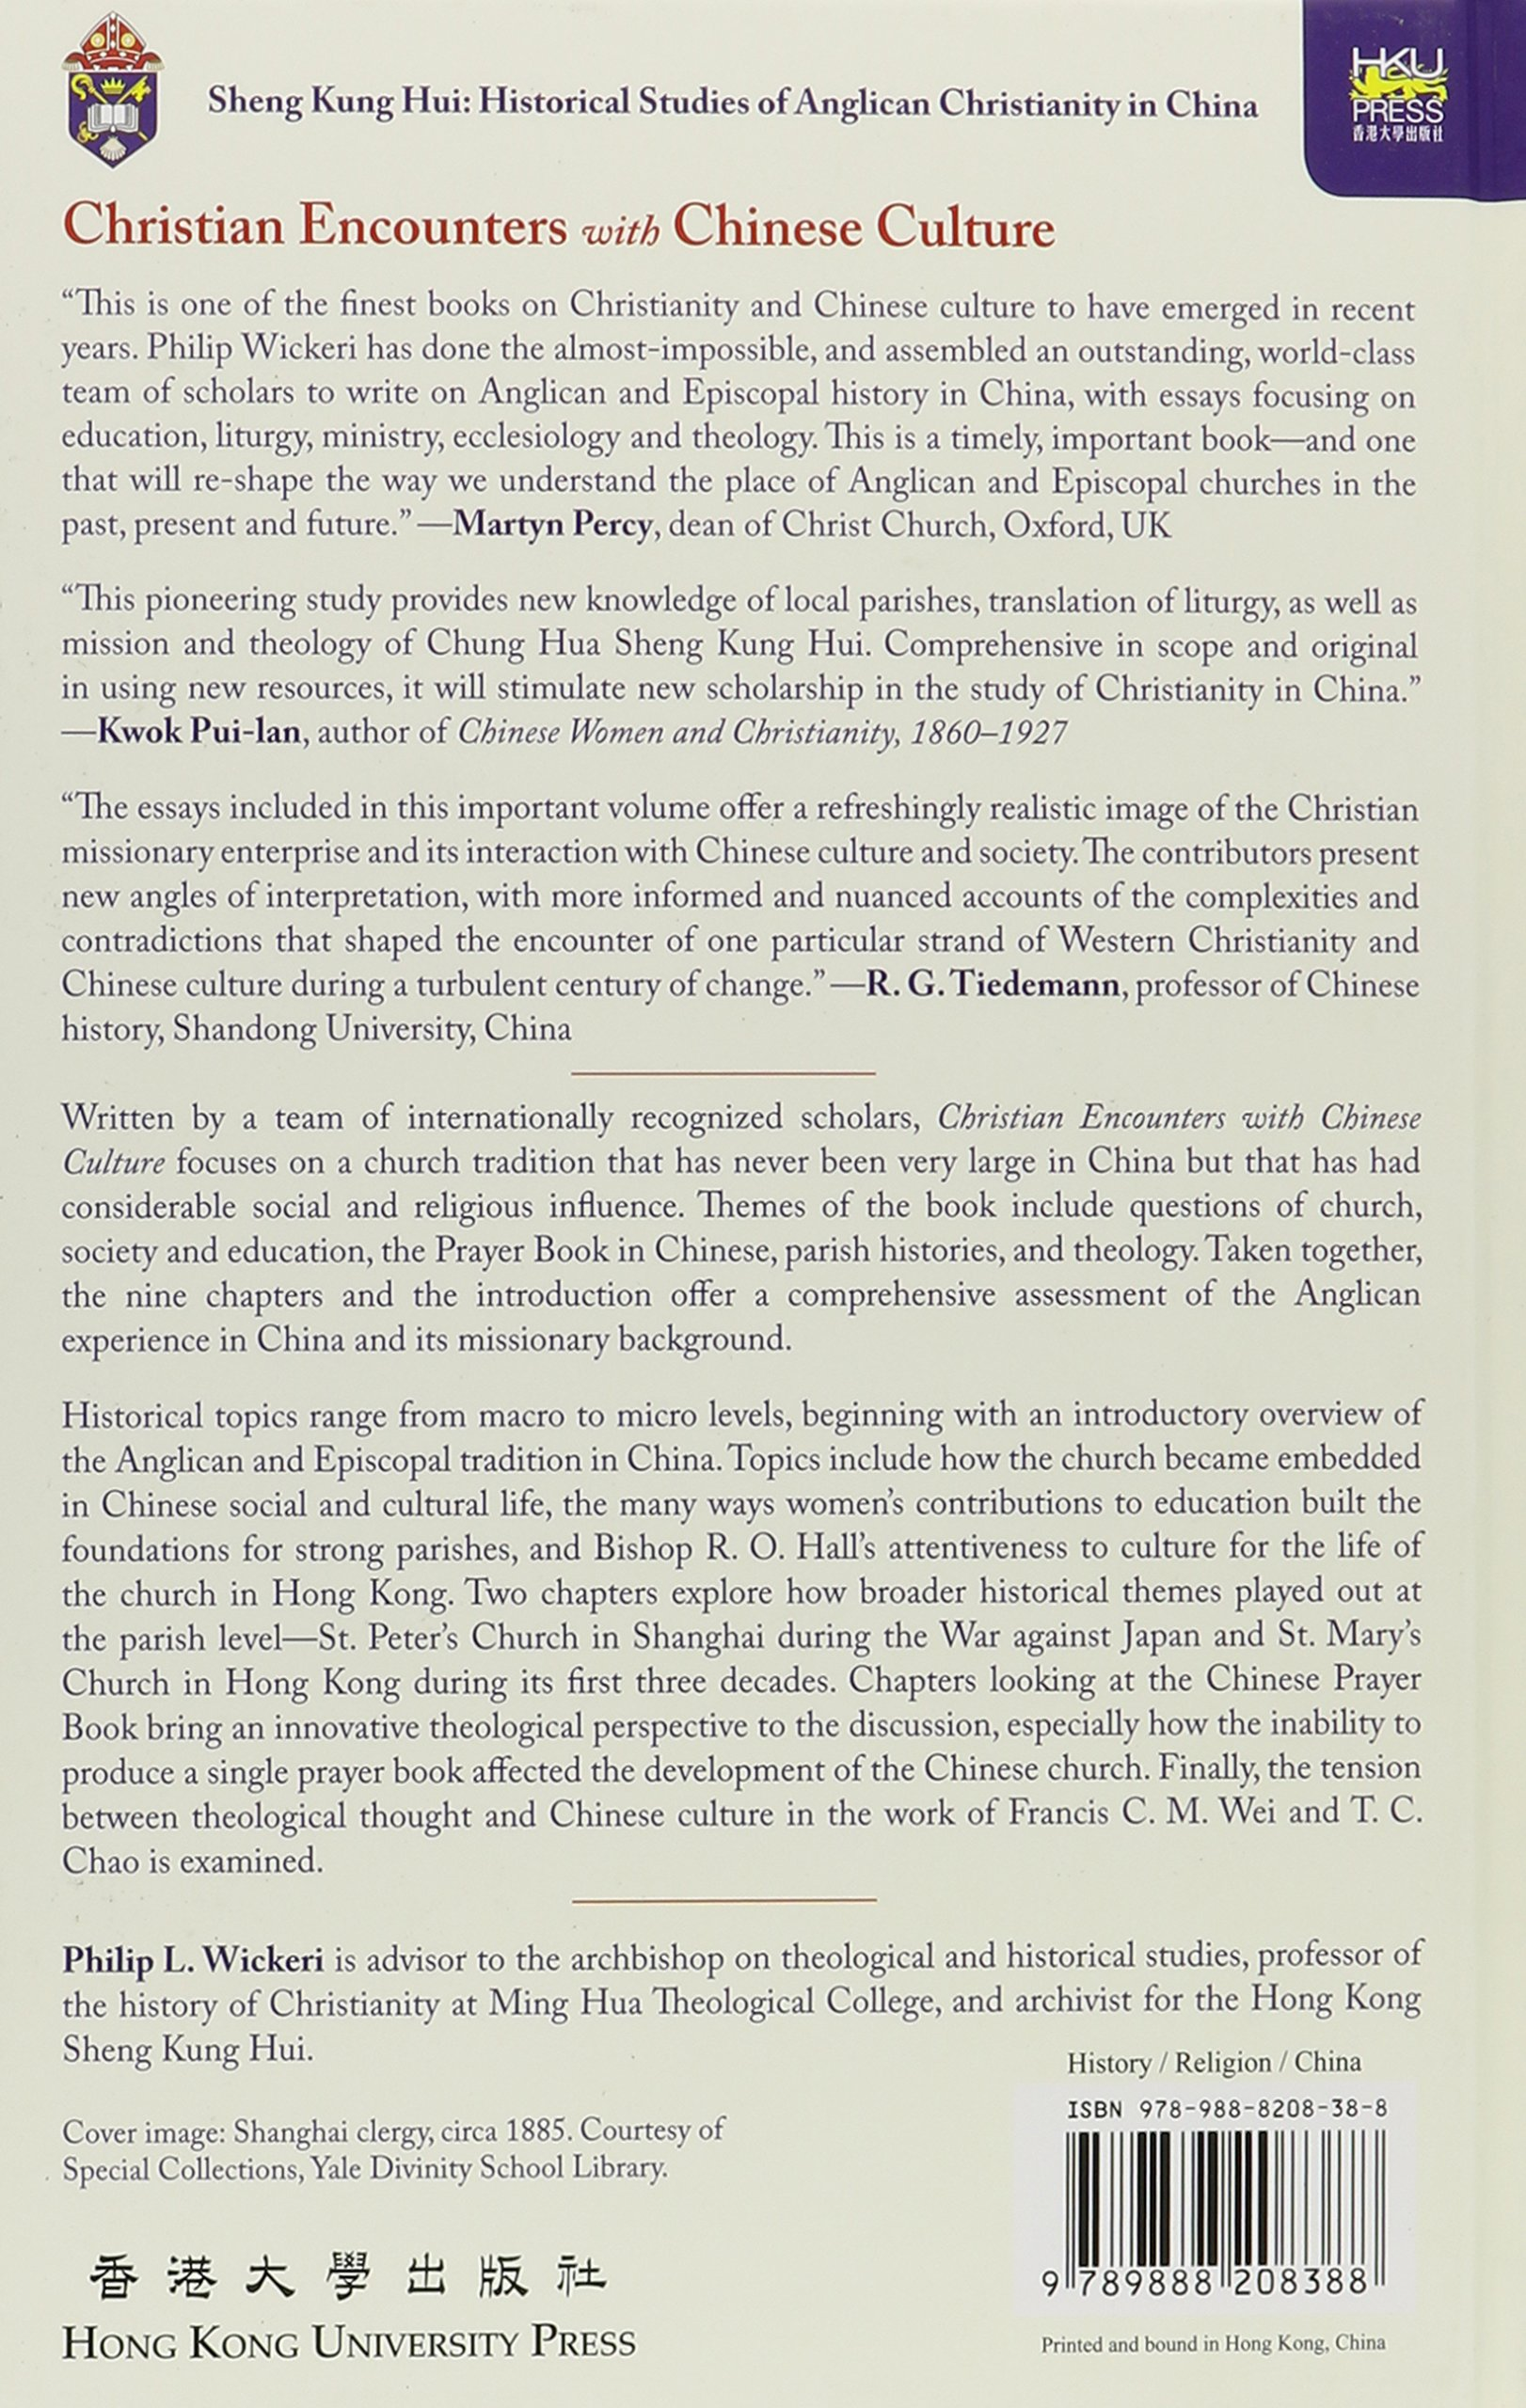 History Of English Essay Christian Encounters With Chinese Culture Essays On Anglican And Episcopal  History In China Sheng Kung Hui Historical Studies Of Anglican  Christianity In  Cheap College Report also Good High School Essay Topics Christian Encounters With Chinese Culture Essays On Anglican And  Argumentative Essay Examples High School